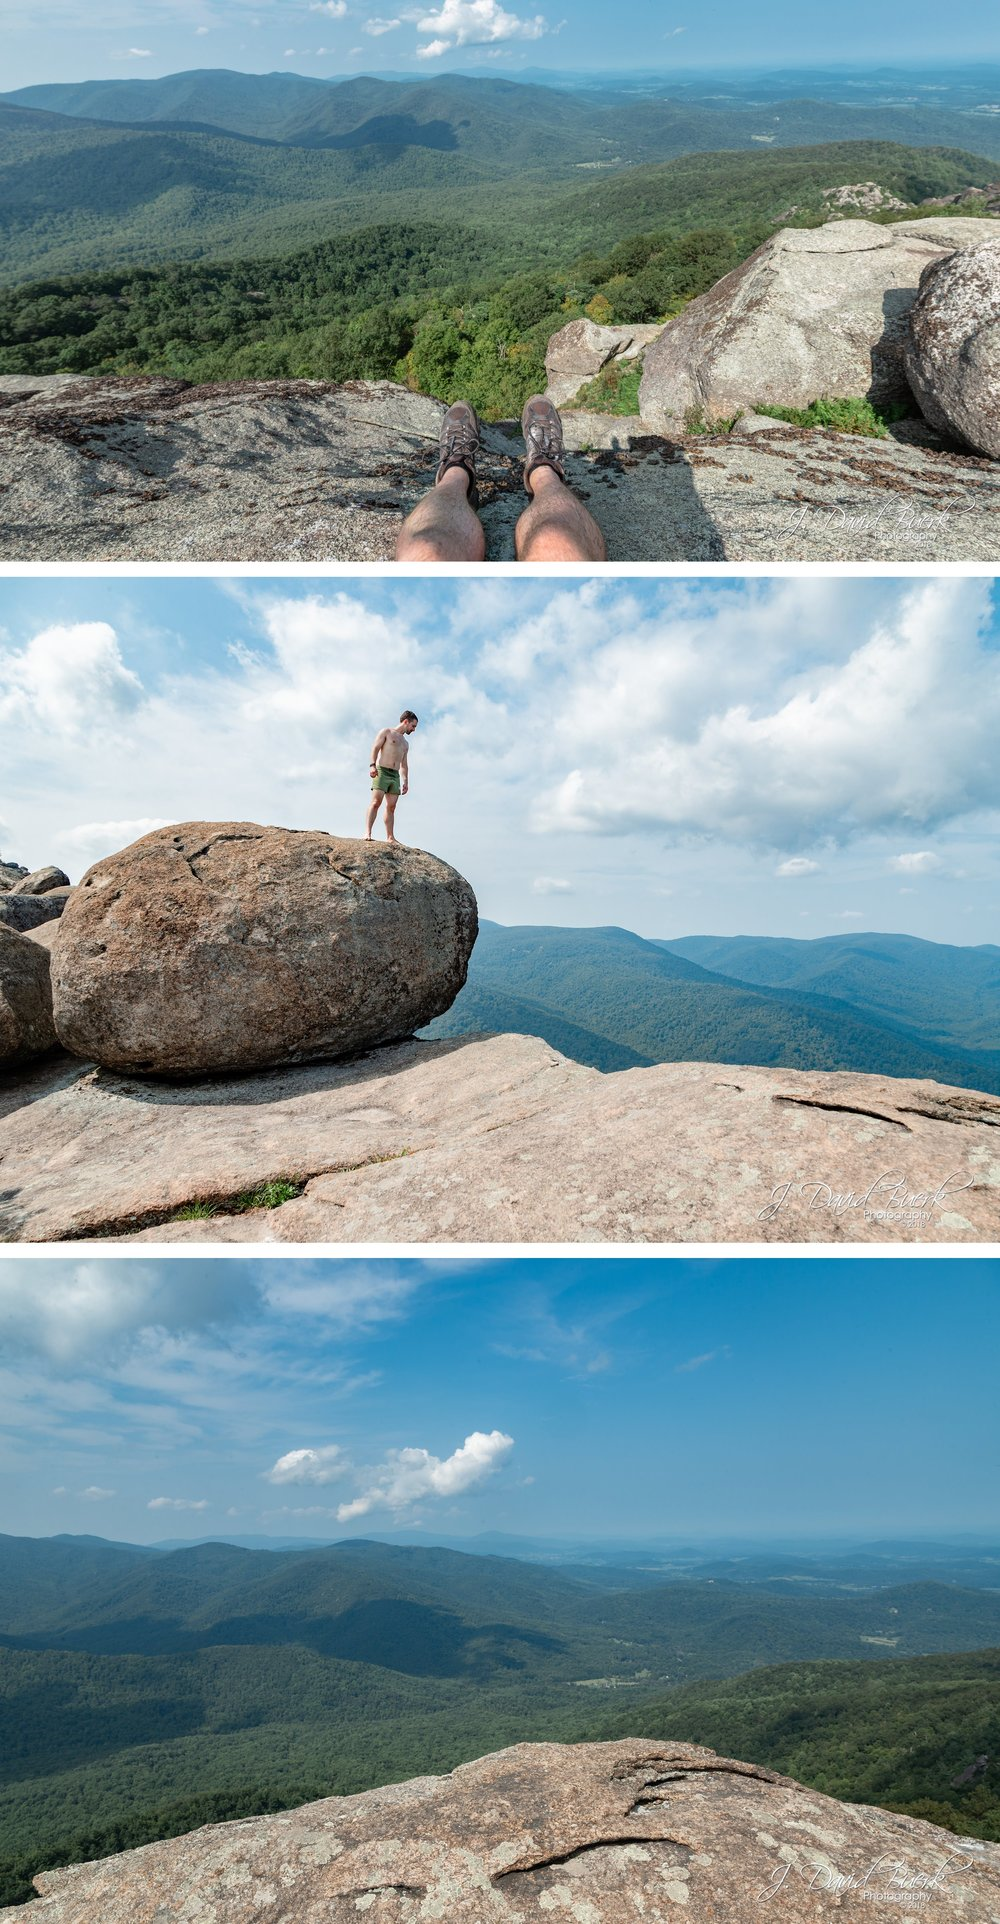 20180826 - Old Rag Mountain August 2018 8.jpg